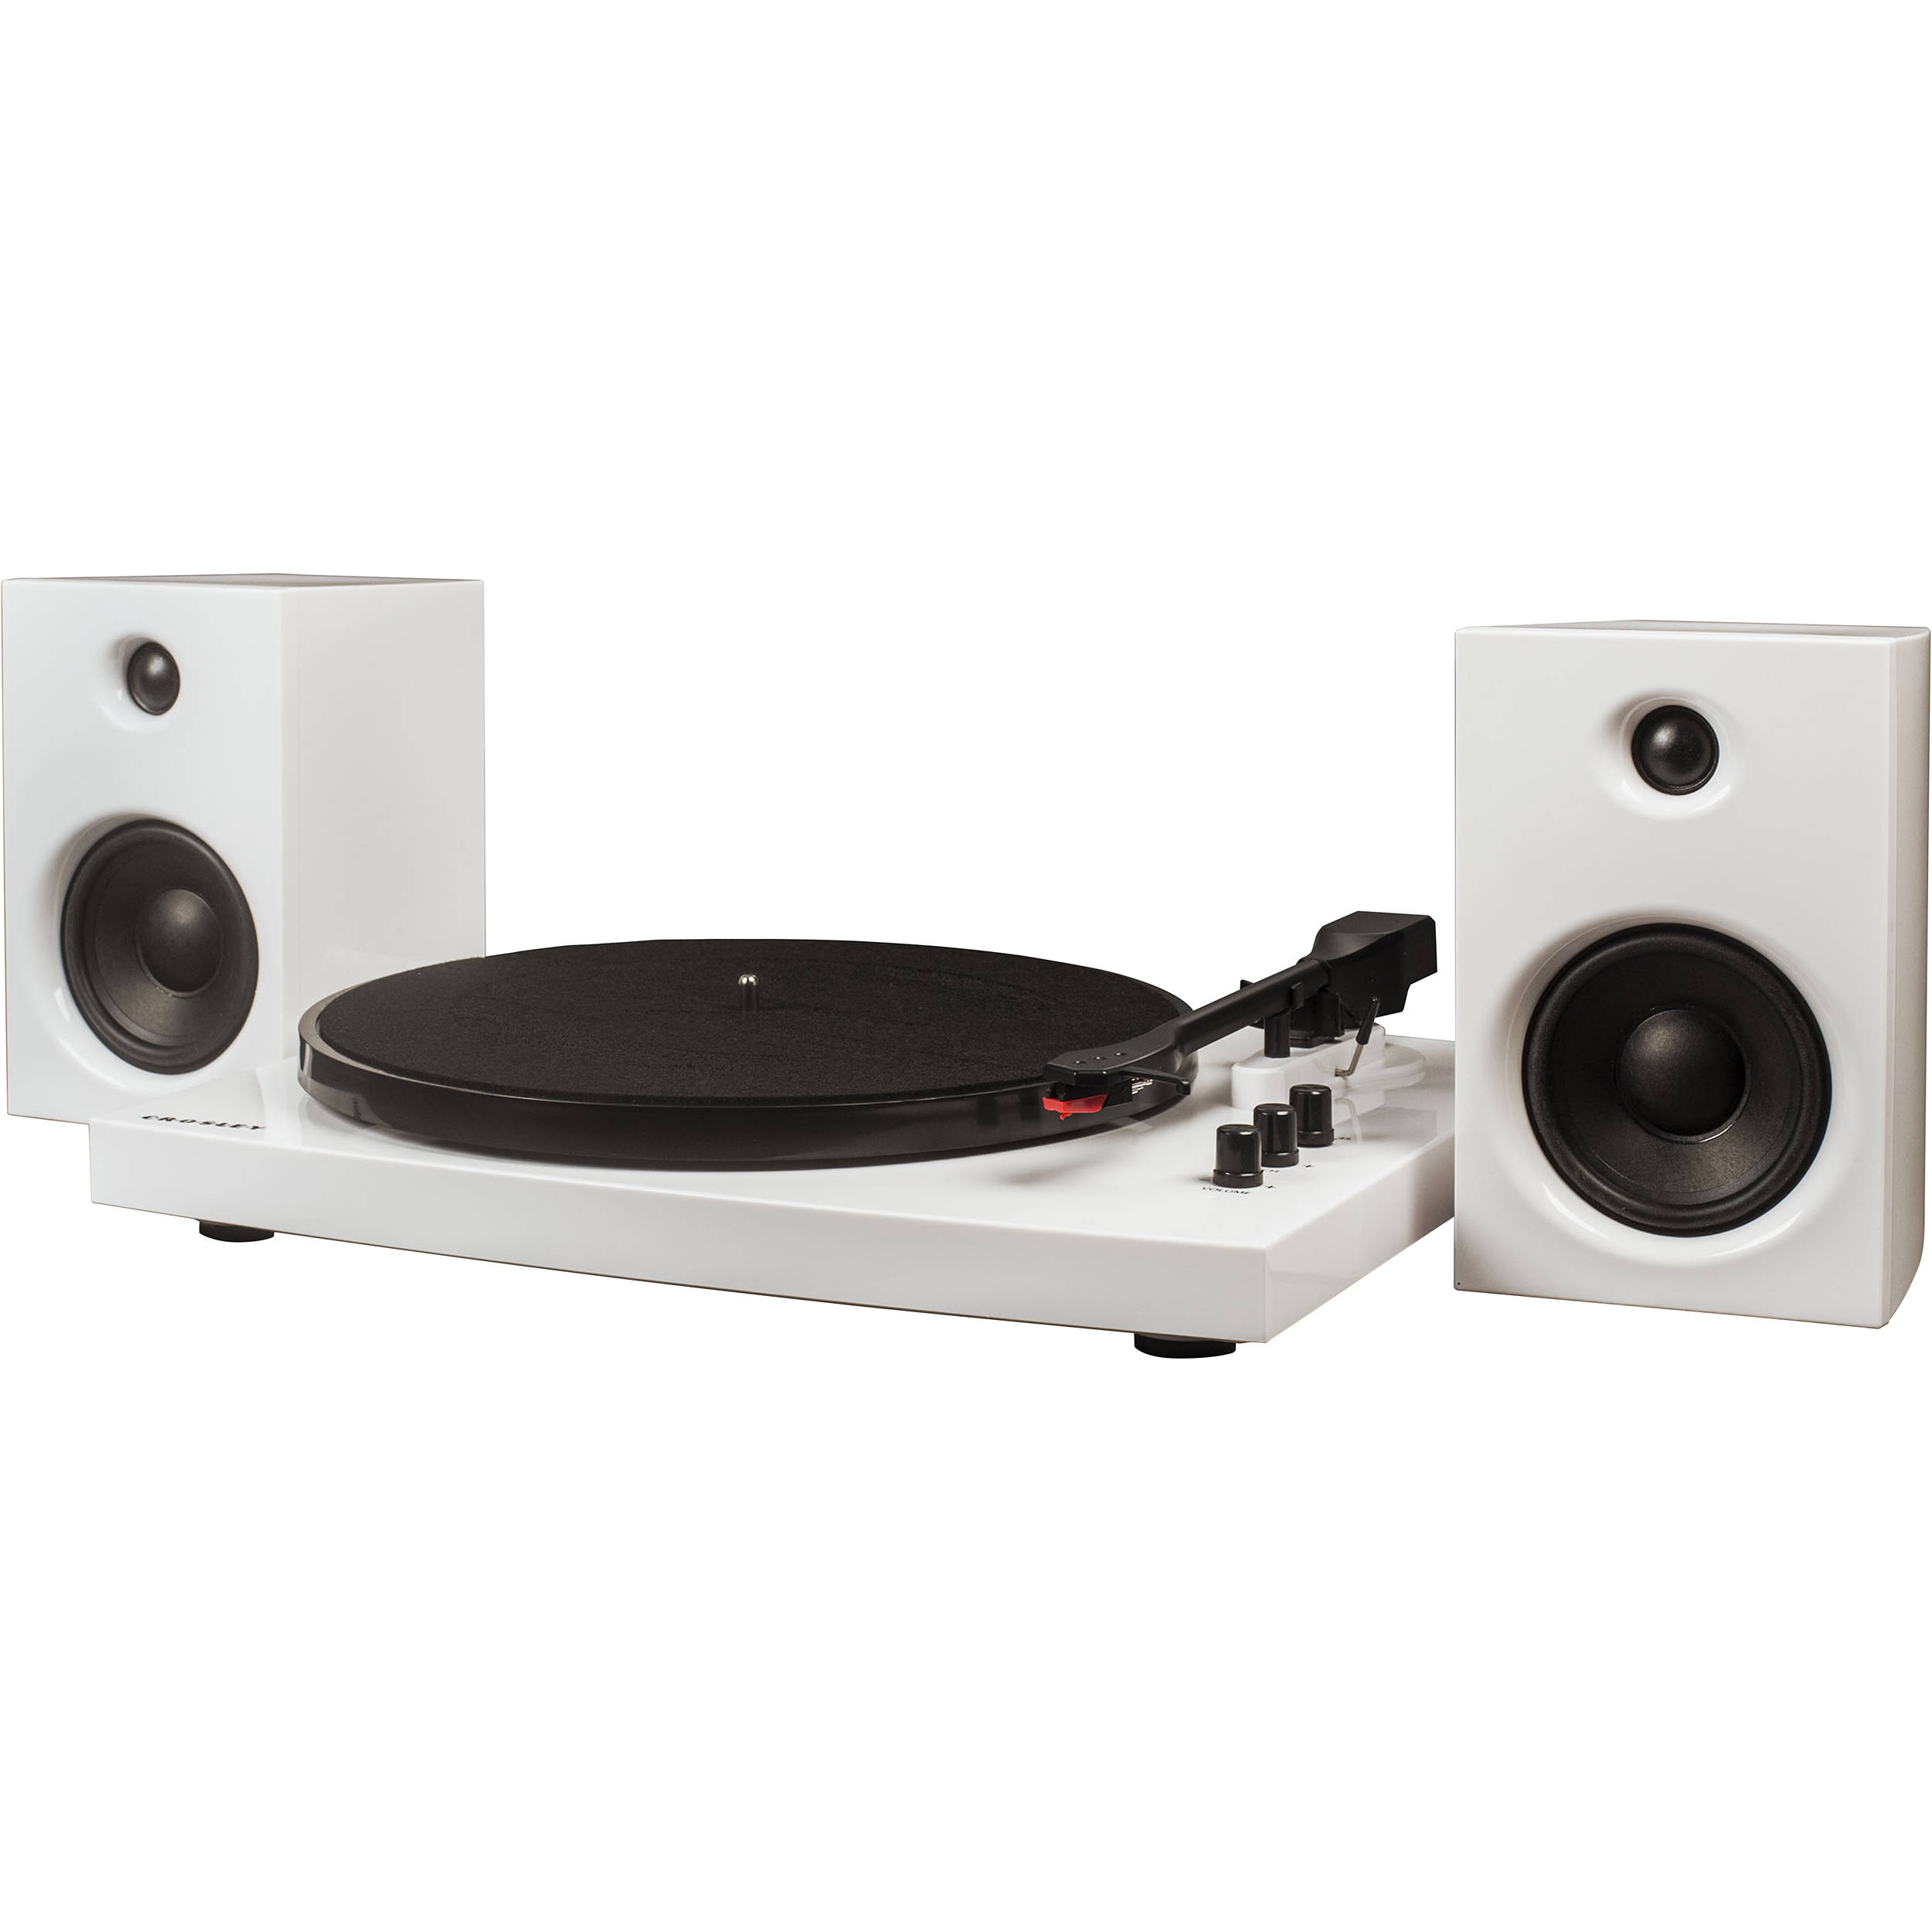 Crosley Radio T100a Stereo Turntable System With Speakers White